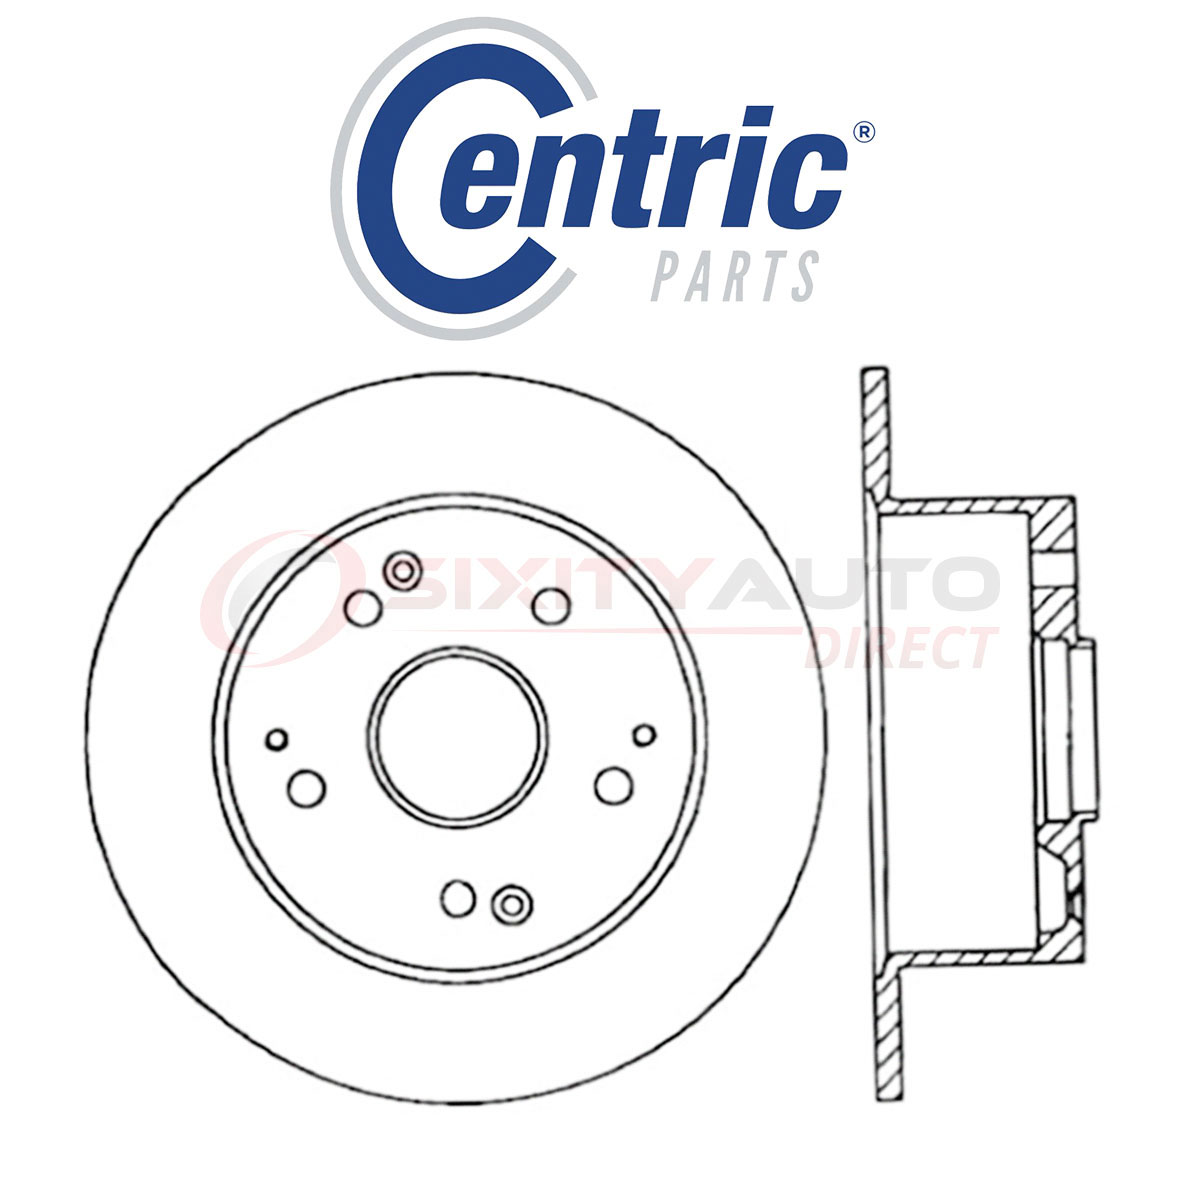 Centric C-TEK Disc Brake Rotor For 1996-1998 Acura TL 3.2L